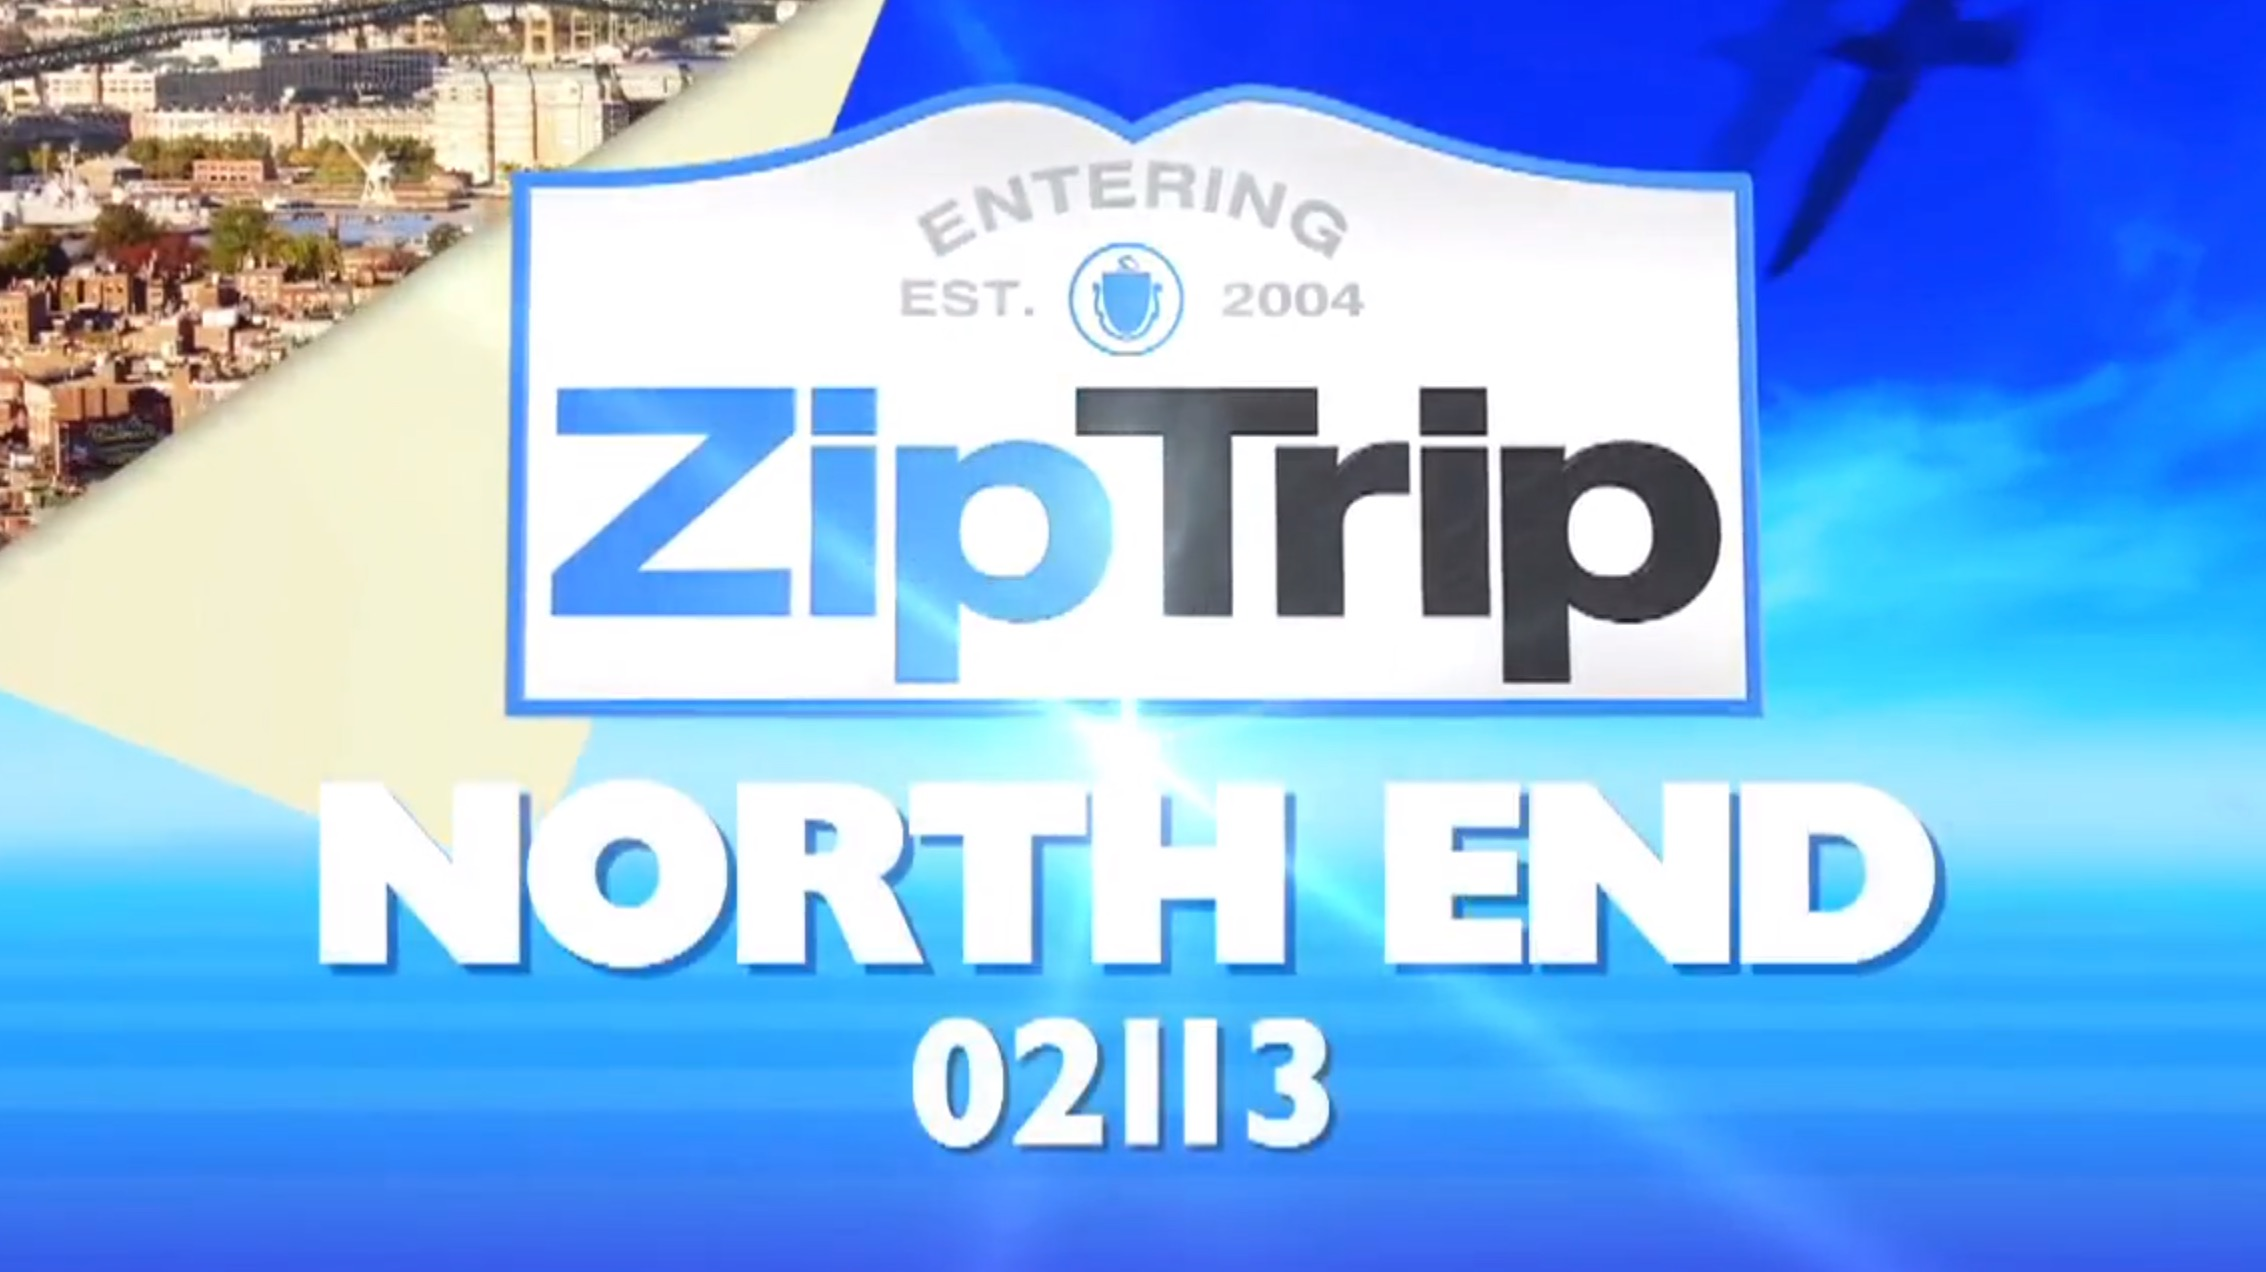 North End Zip Trip